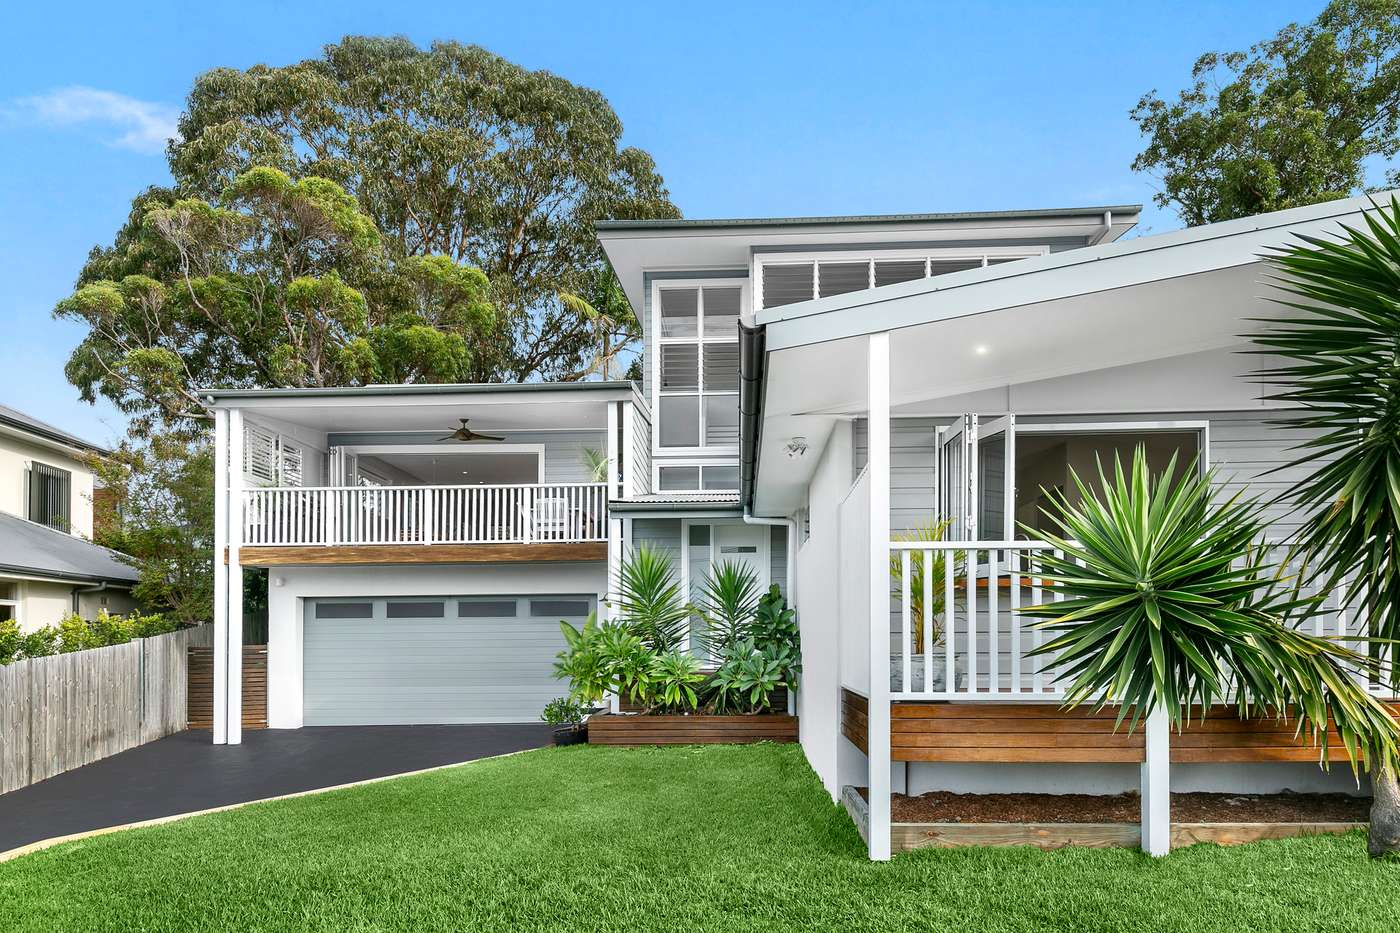 Main view of Homely house listing, 7 Rowena Road, Narraweena, NSW 2099